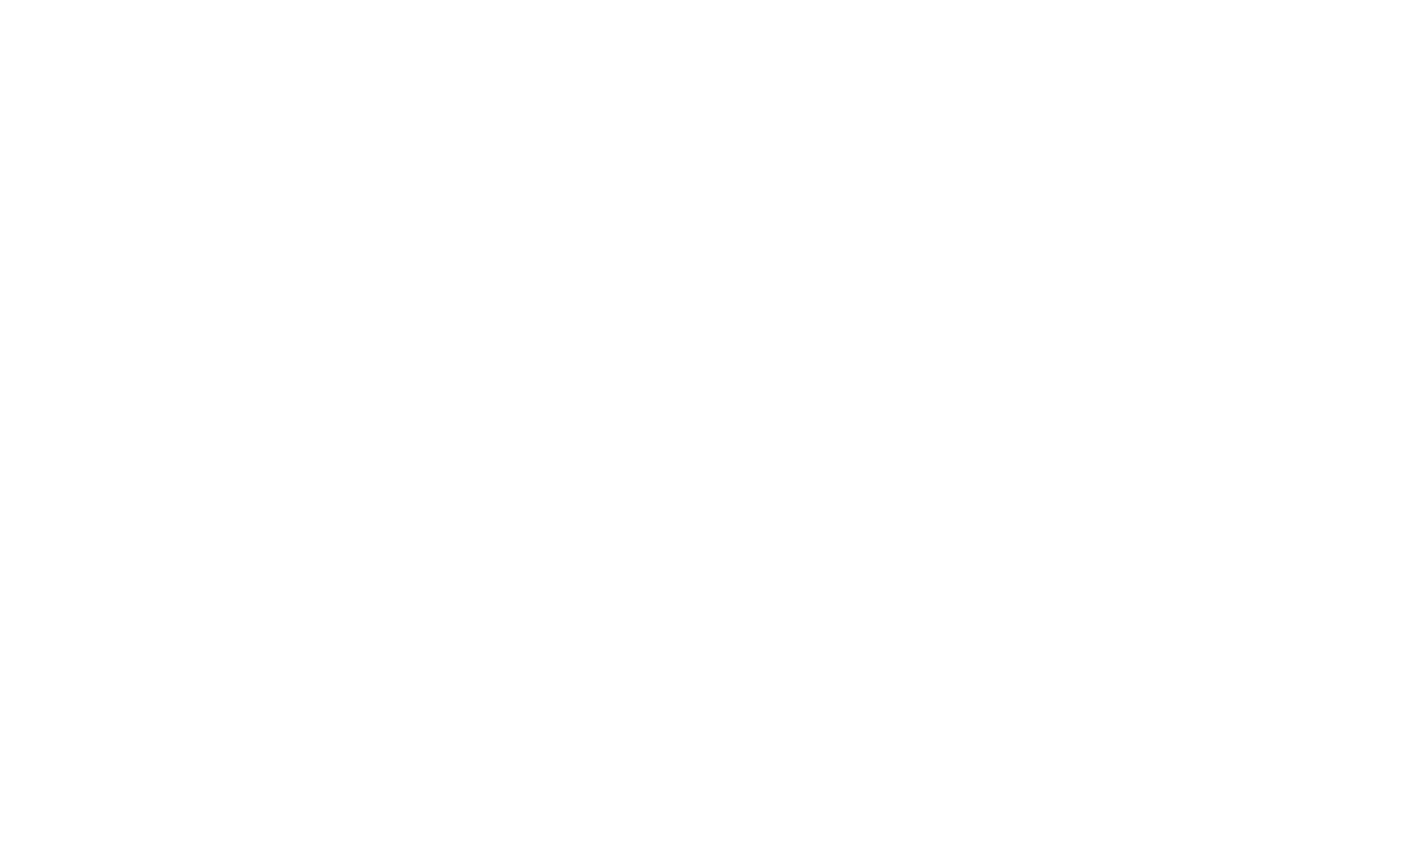 Continue the conversation, we want to hear from you.